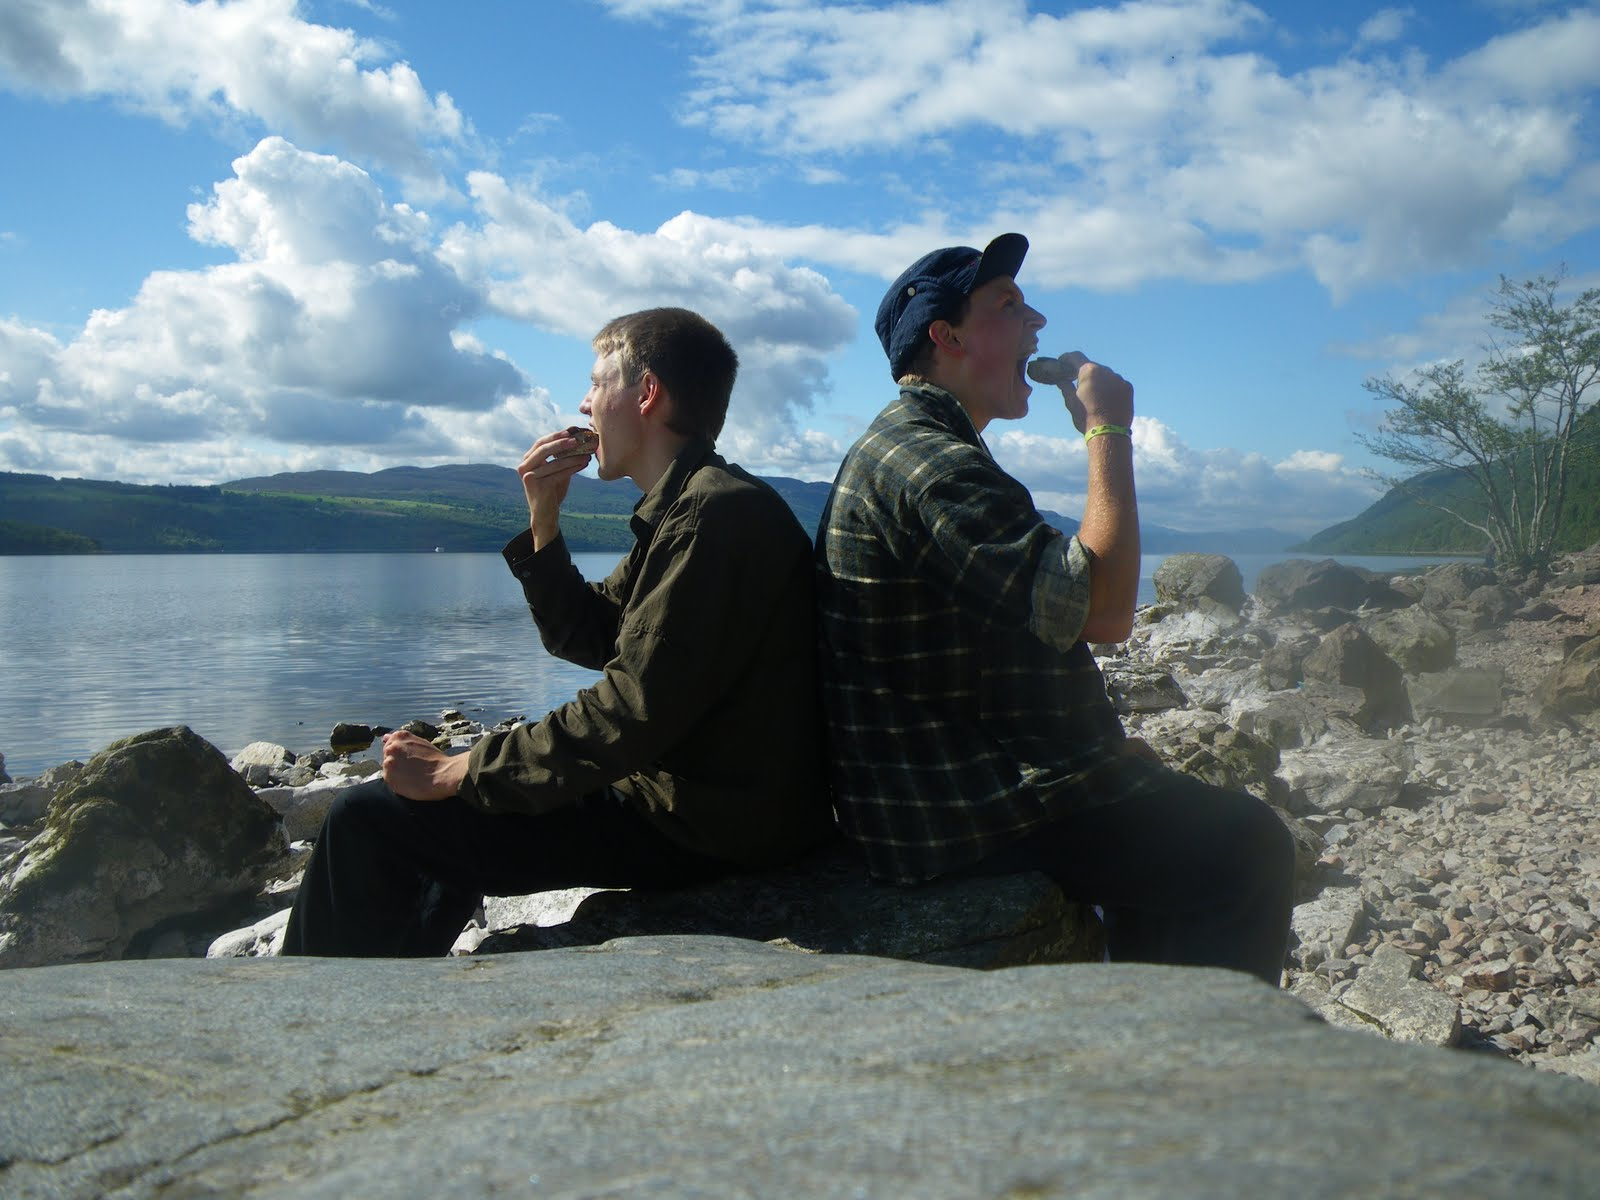 Eating lunch by the lake of Loch Ness and its monster Where: Lake Loch Ness, Inverness, Scotland